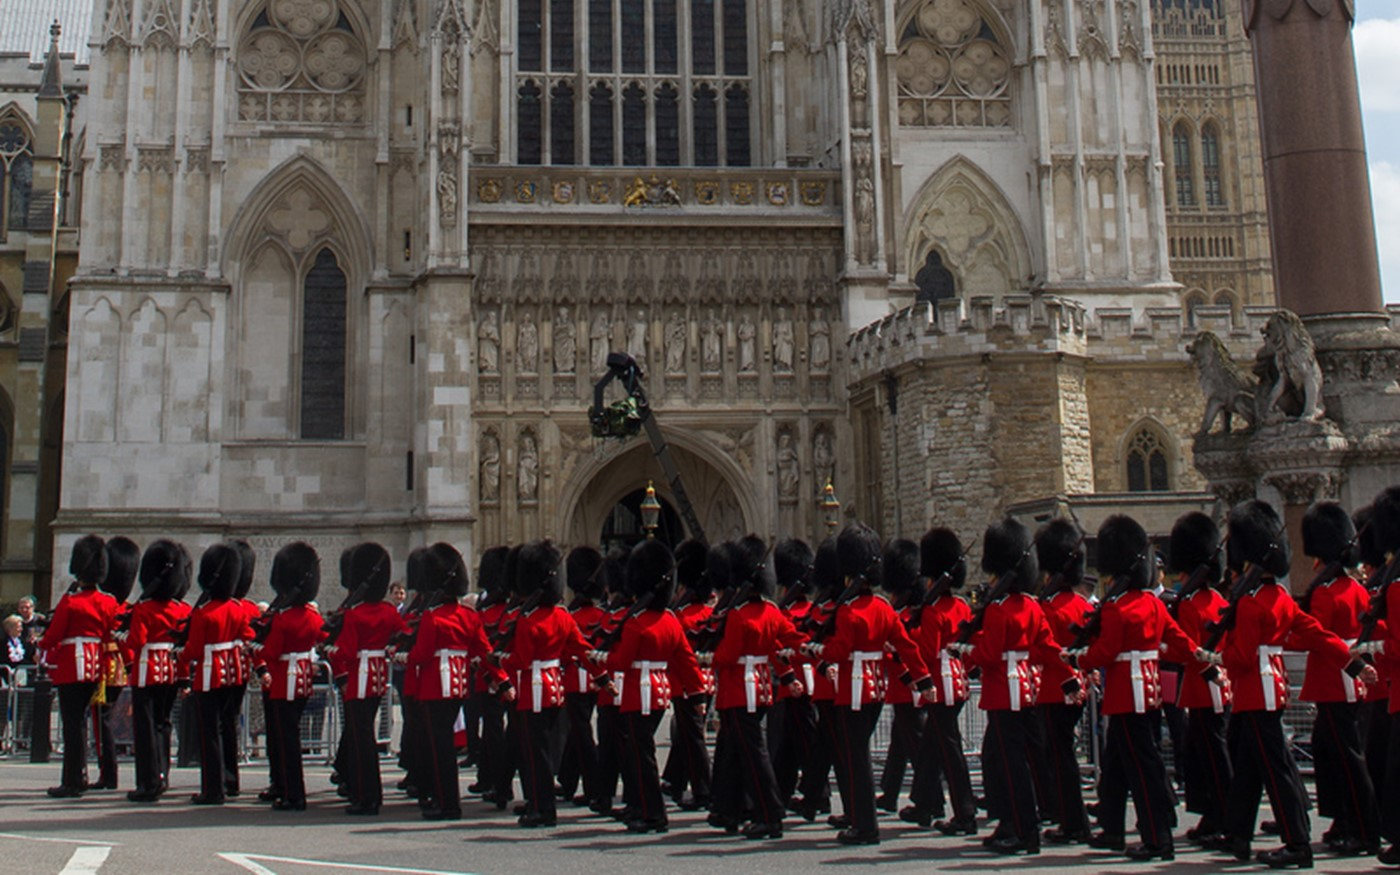 The March to House Guards Parade passes The Abbey